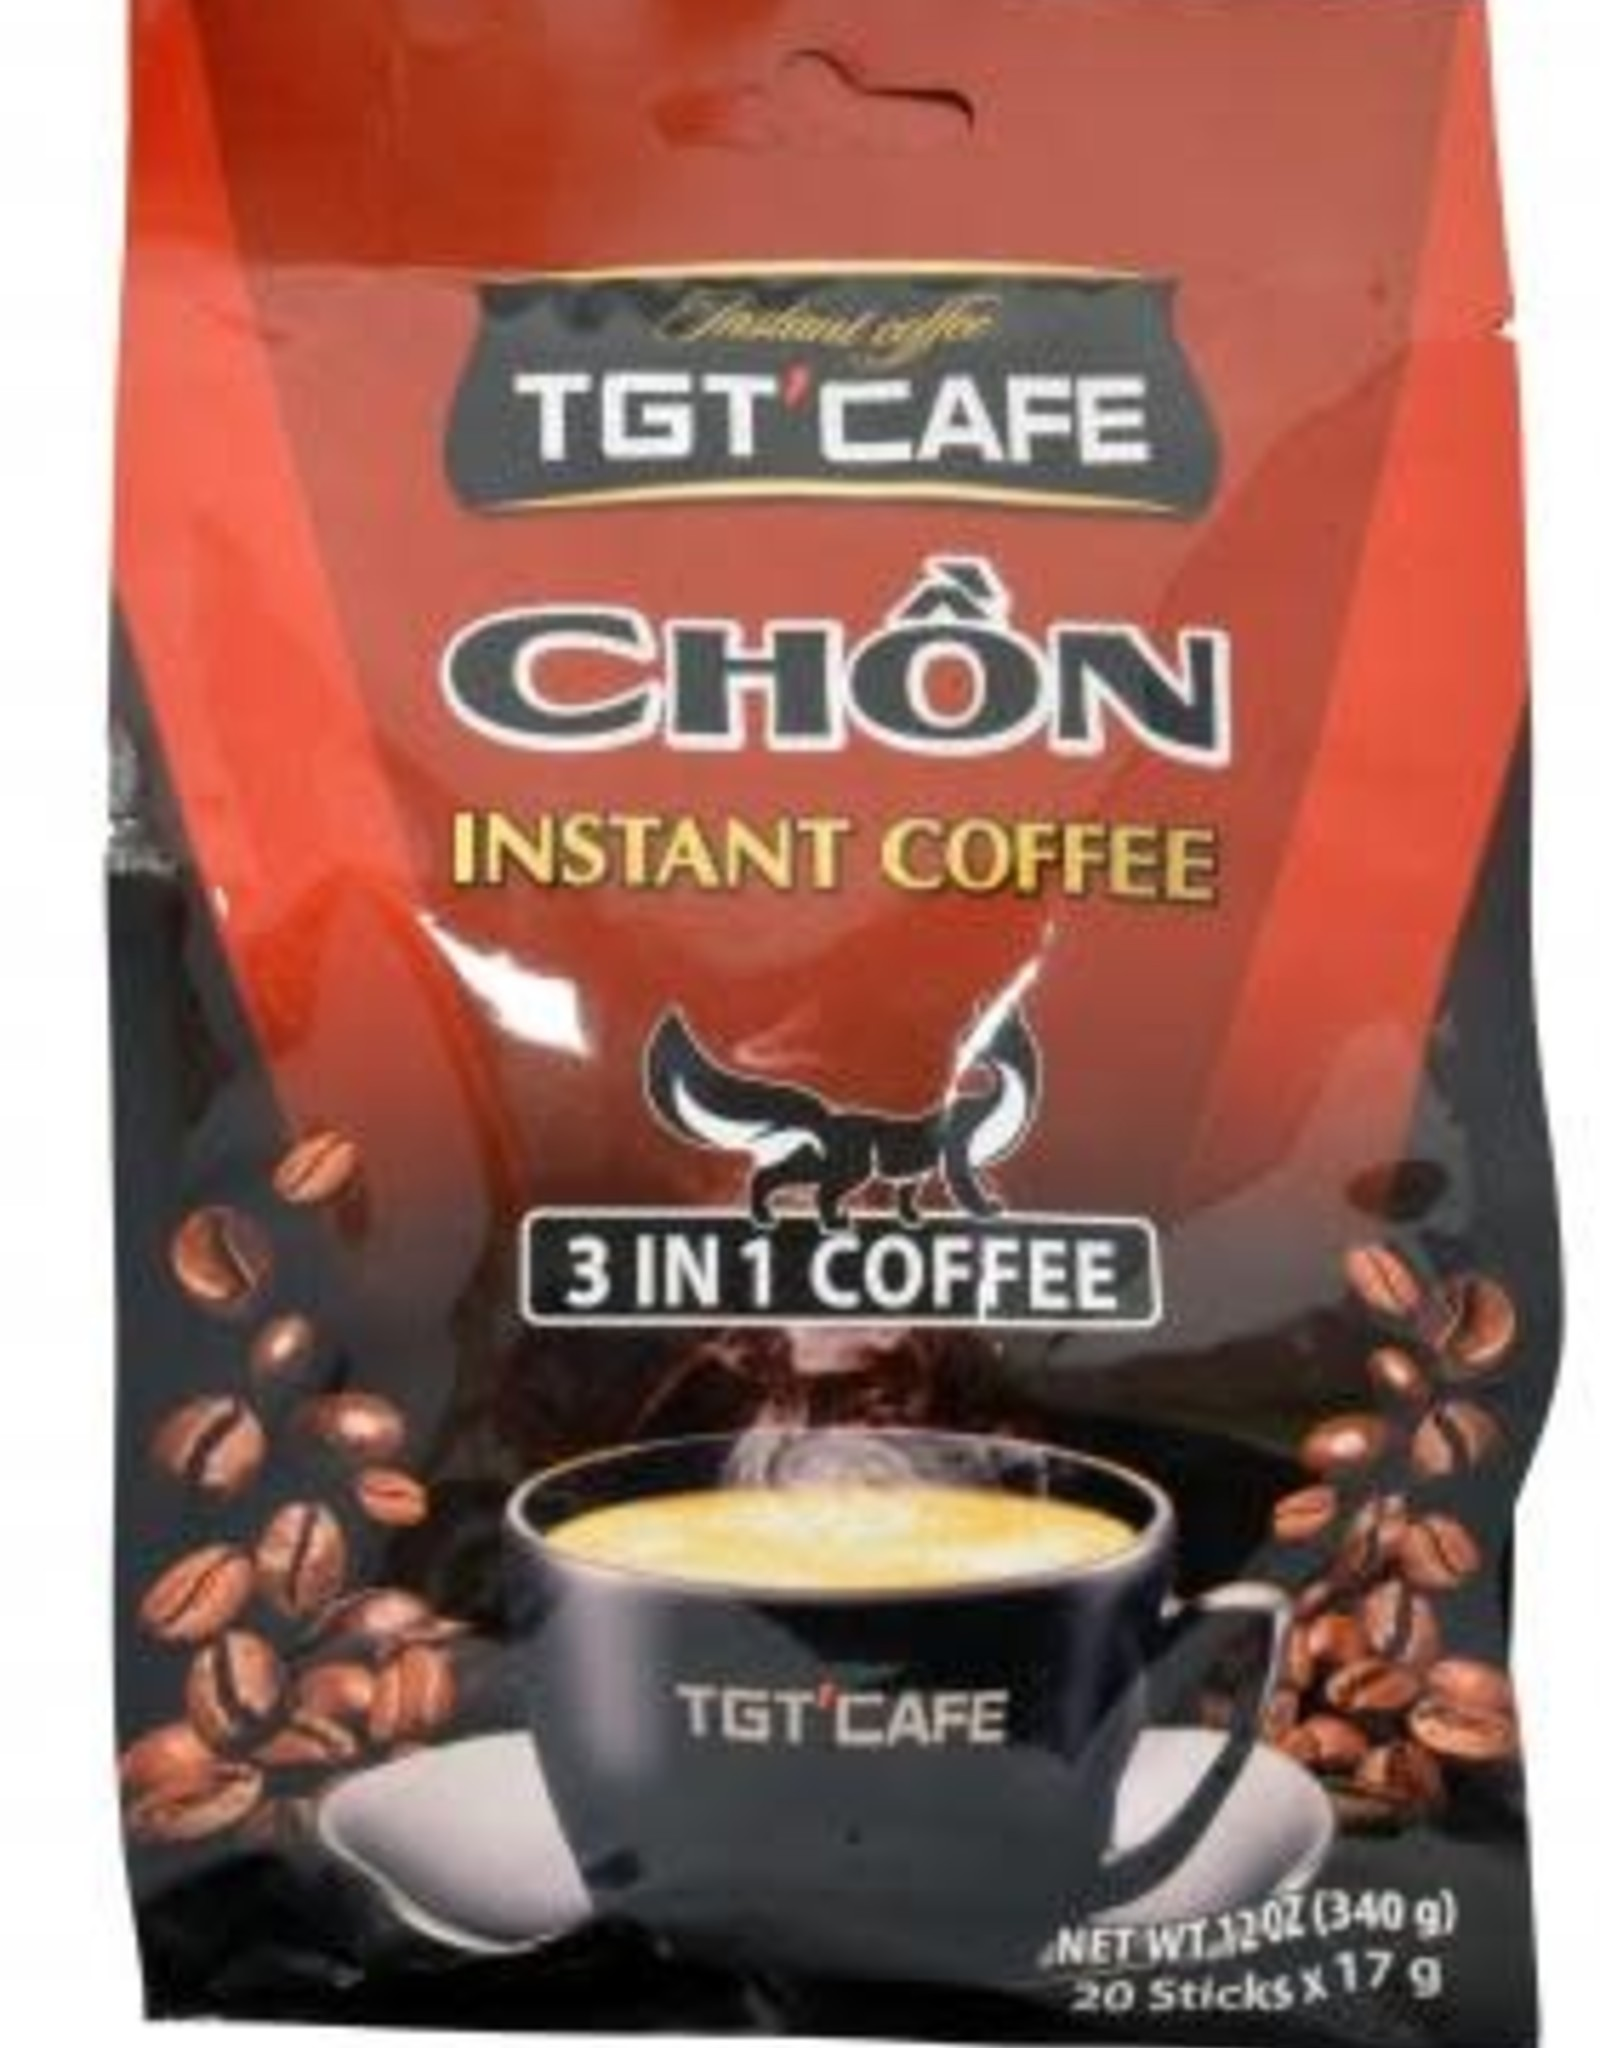 TGT Inst.Coffee 3 In 1 Chon 340 Gr